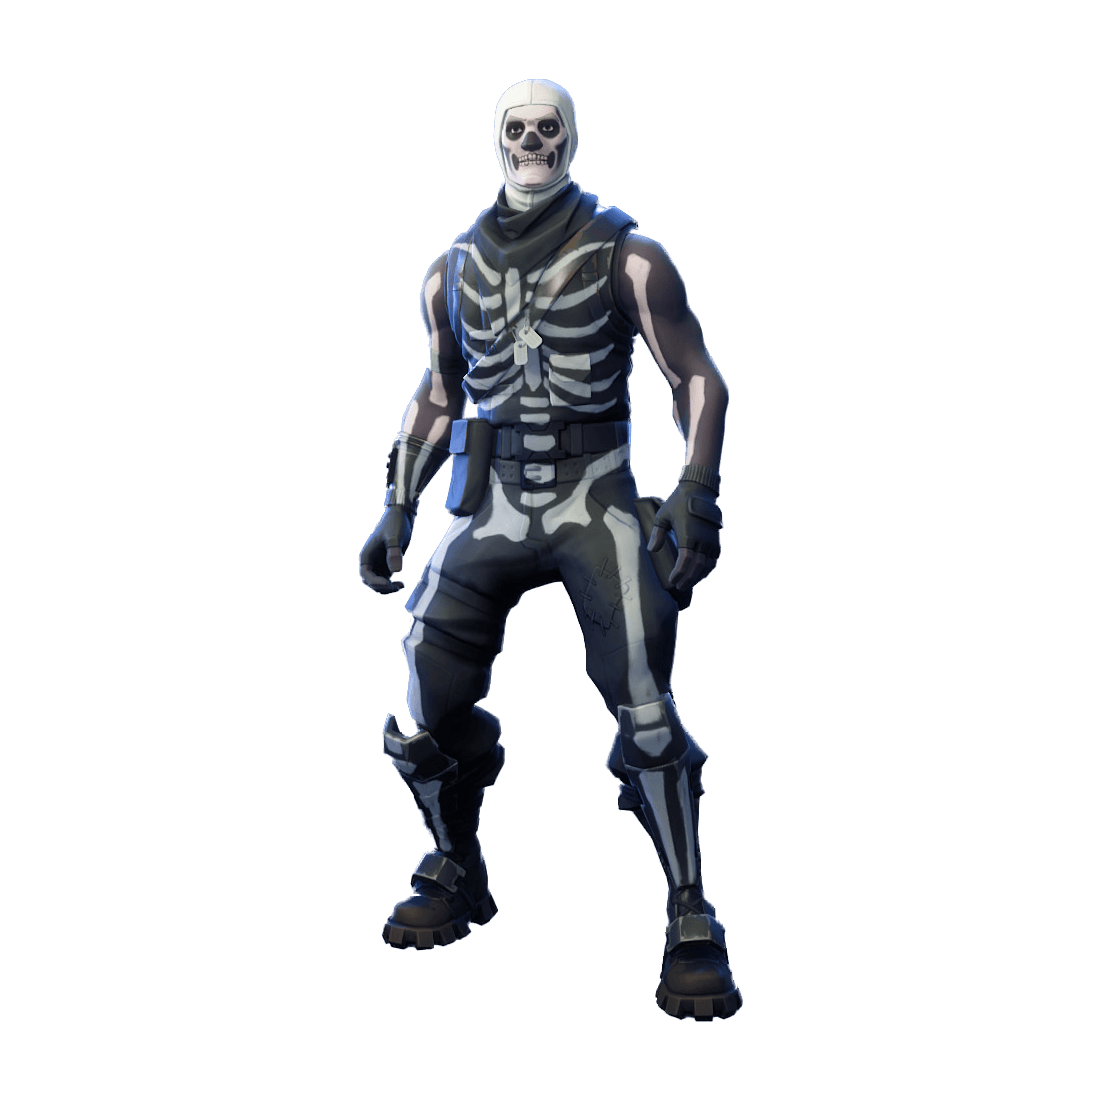 Skull Trooper Fortnite Cool Wallpapers Top Free Skull Trooper Fortnite Cool Backgrounds Wallpaperaccess